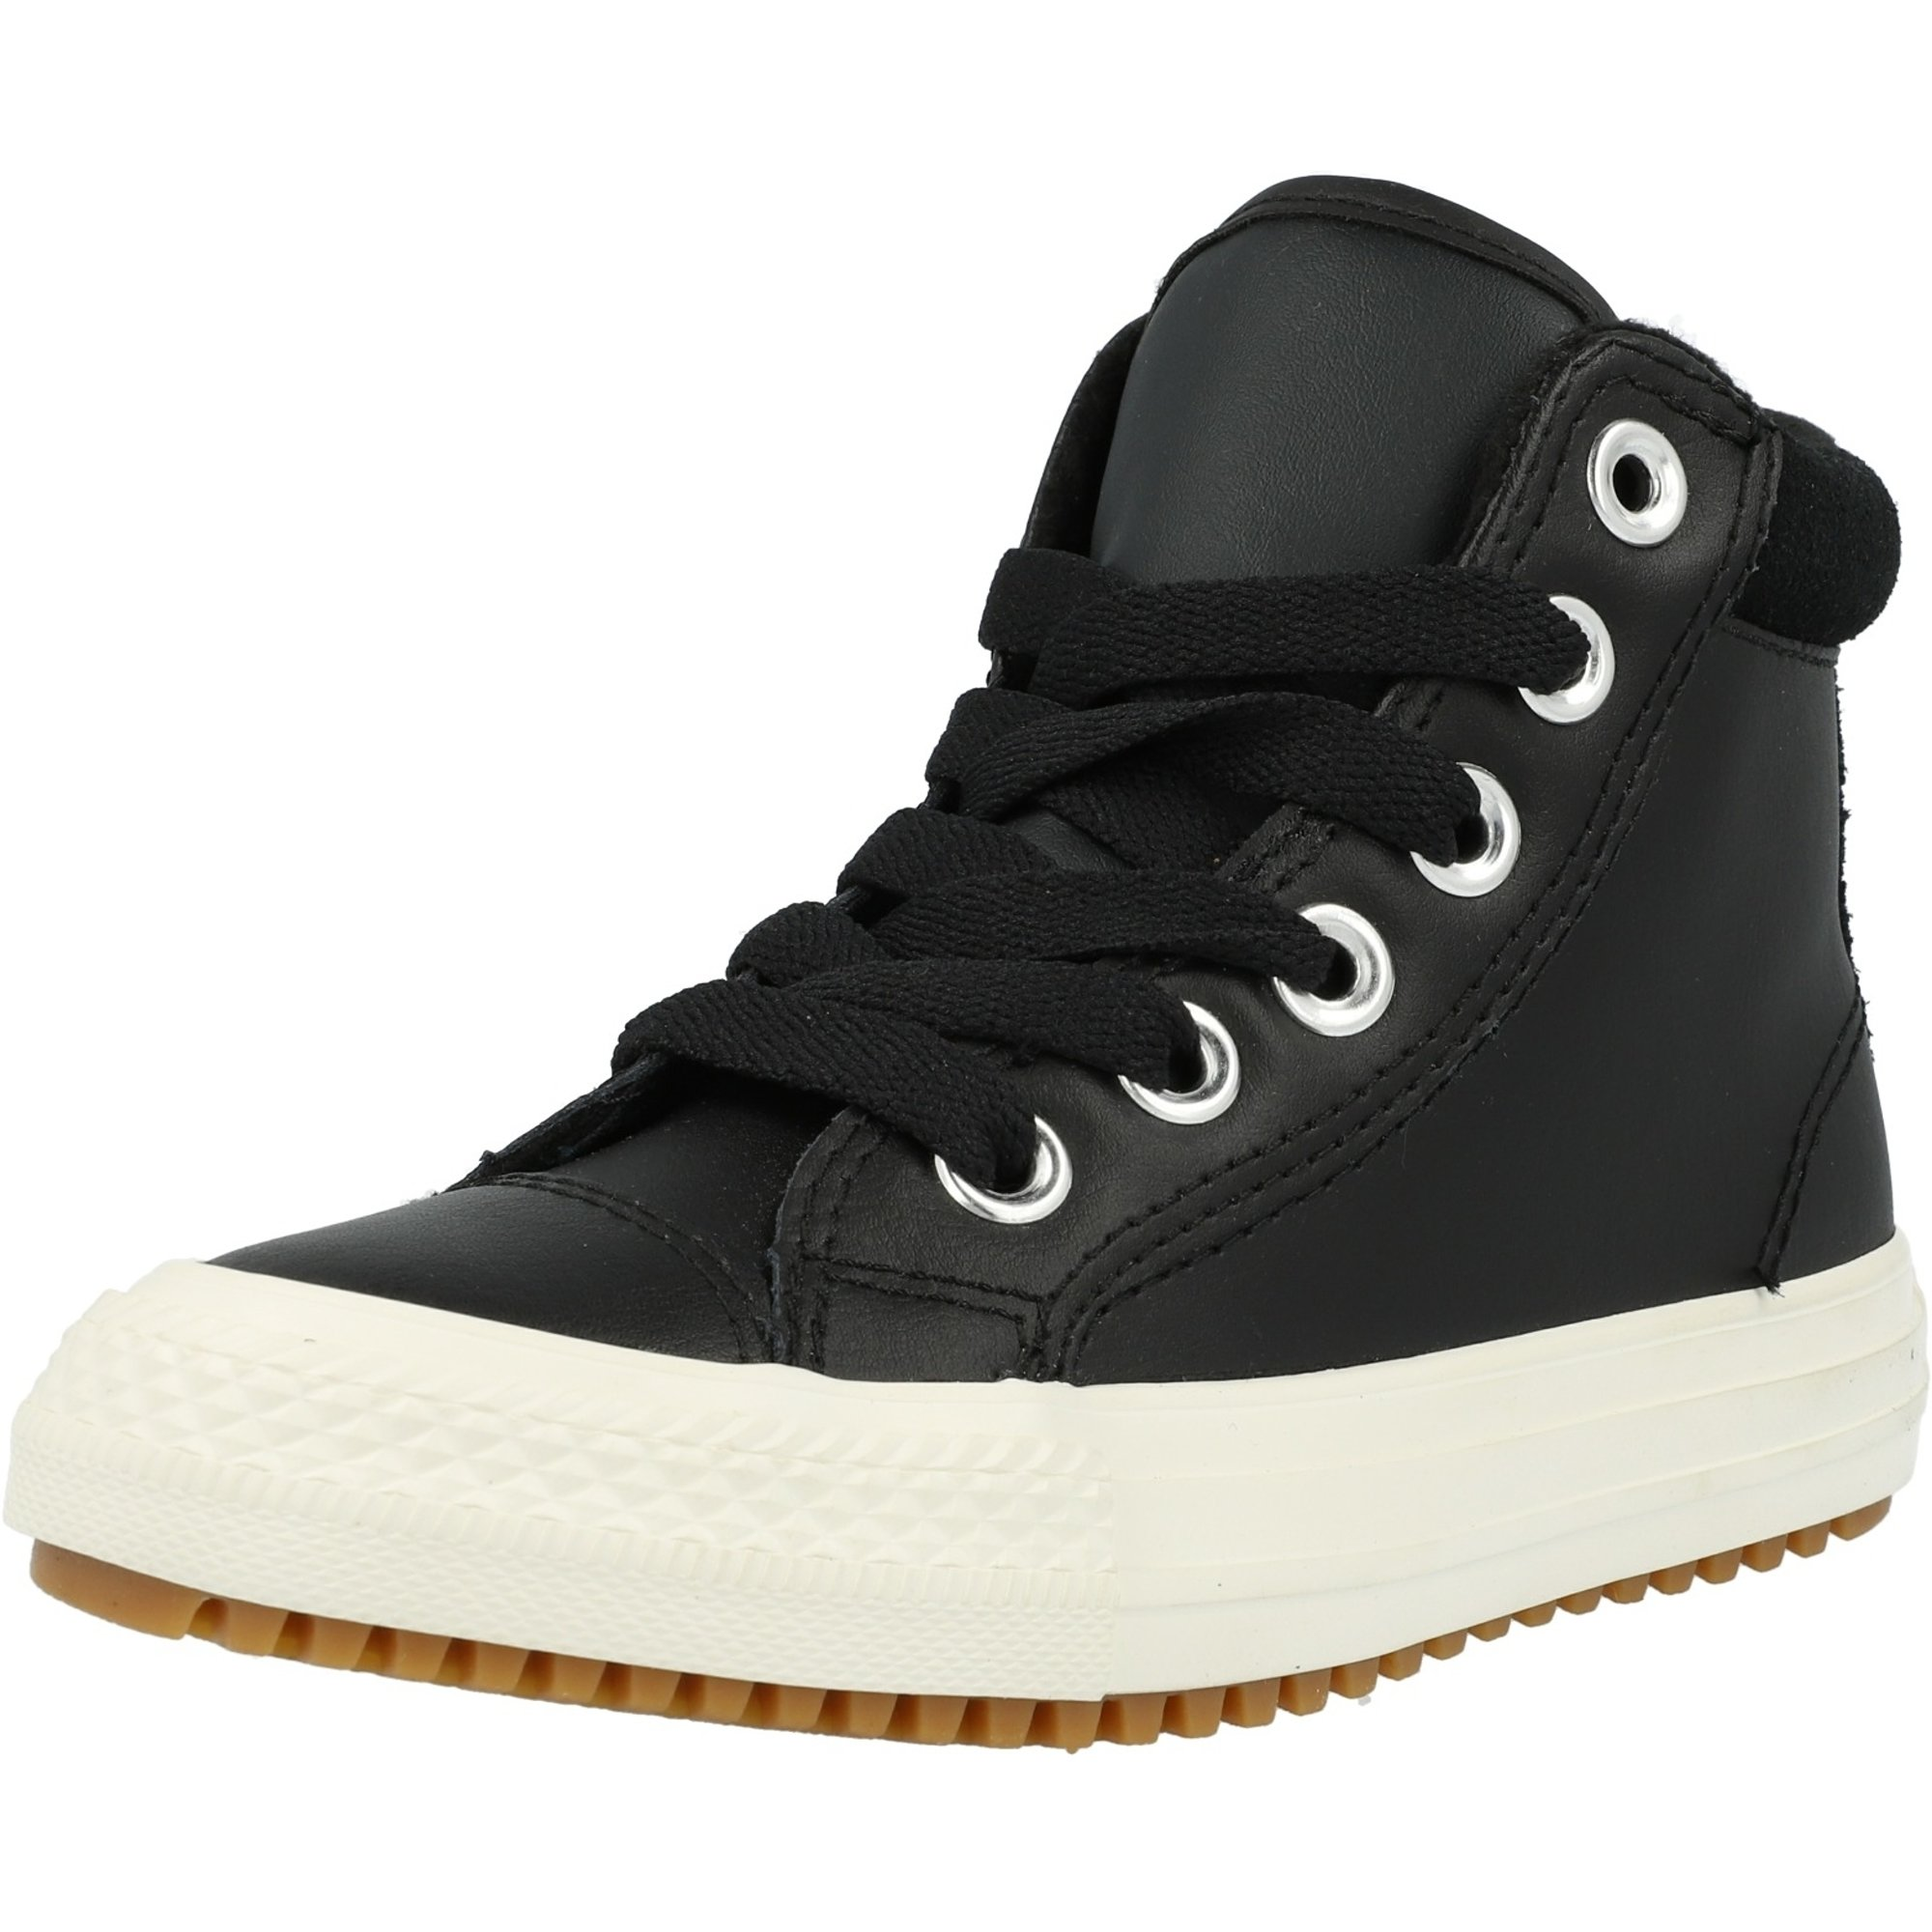 Converse Chuck Taylor All Star PC Boot